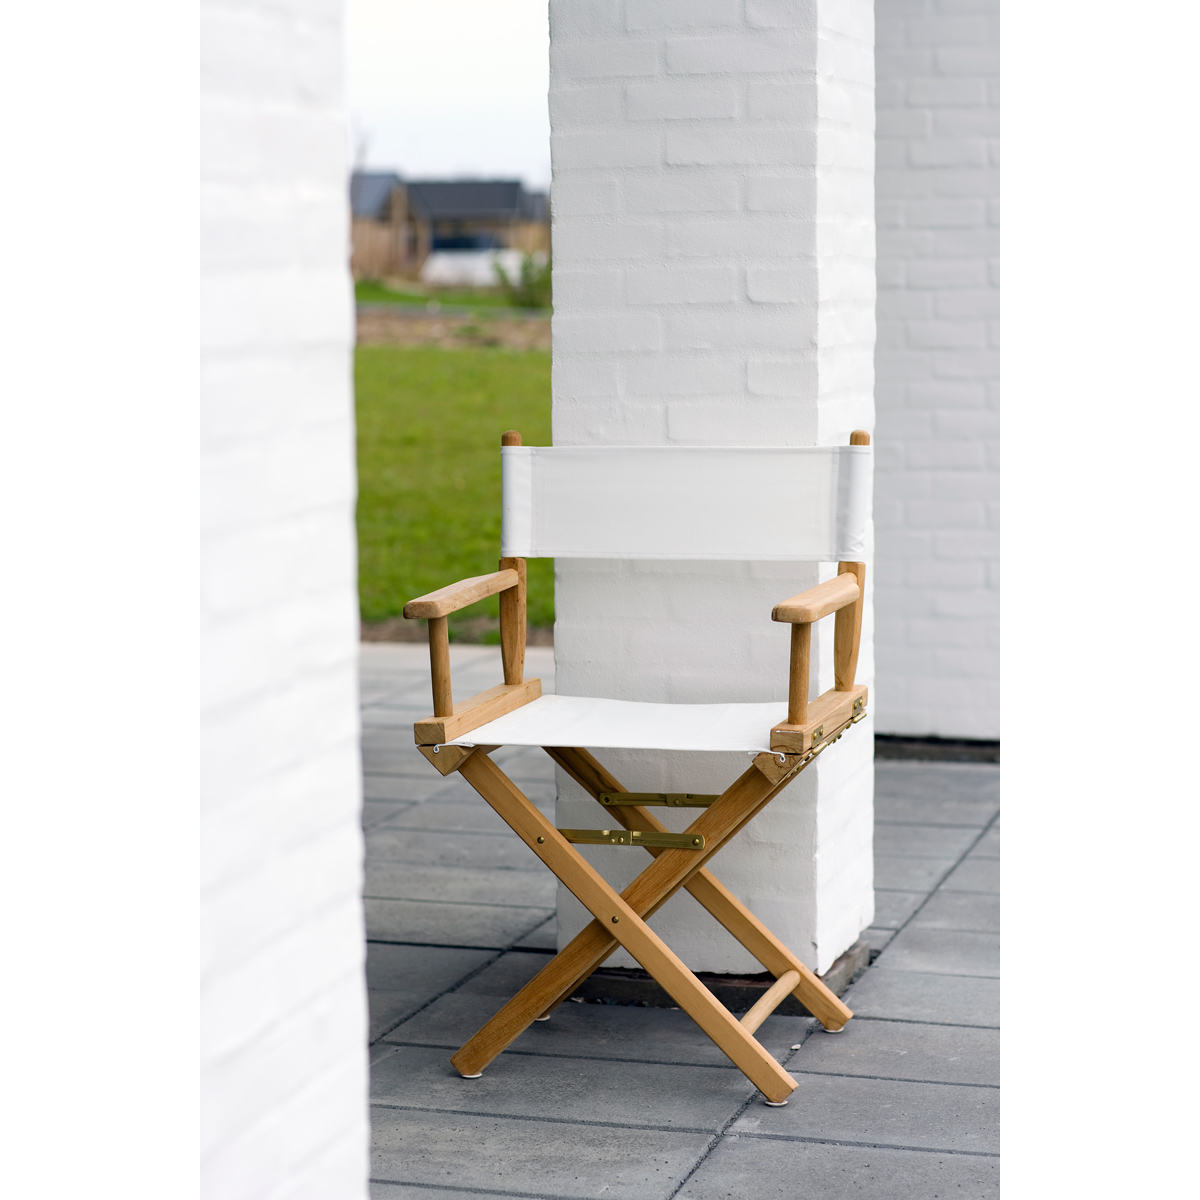 Attractive Directors Chair Replacement Canvas for Best Director Chair Ideas: Gold Medal Chairs | Telescope Directors Chair | Directors Chair Replacement Canvas